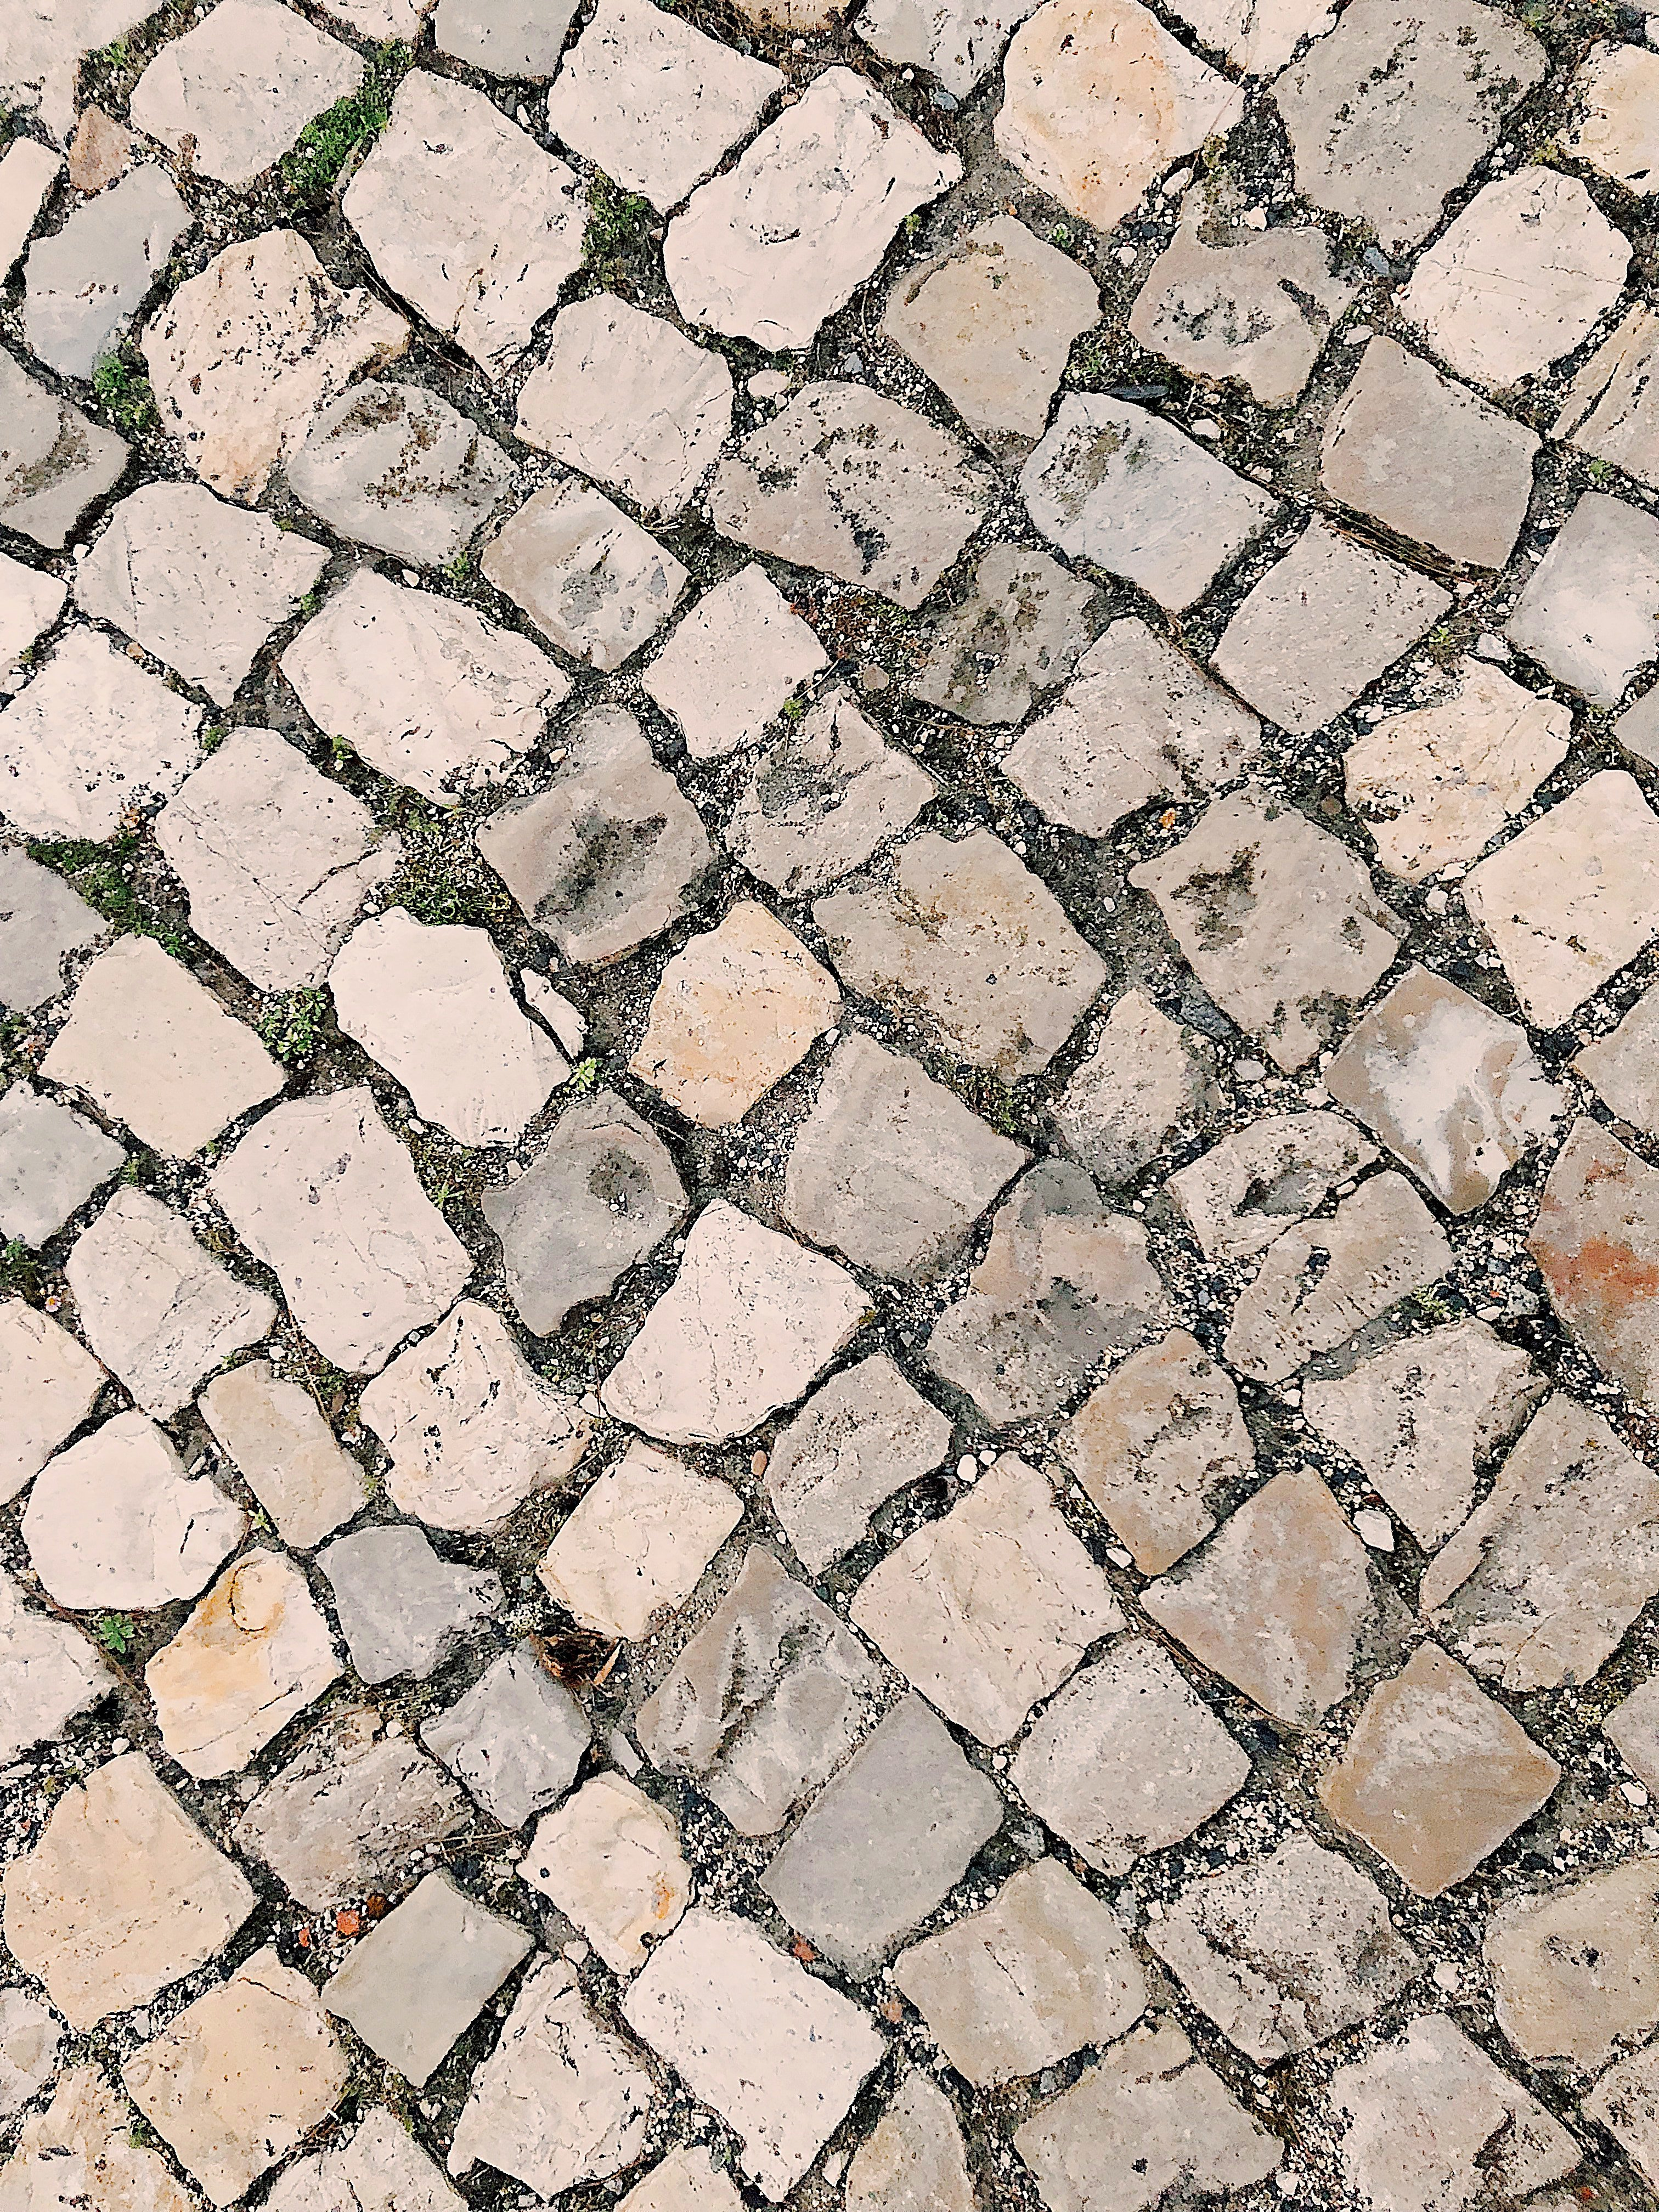 The man started collecting cobblestones outside his house. | Photo: Pexels